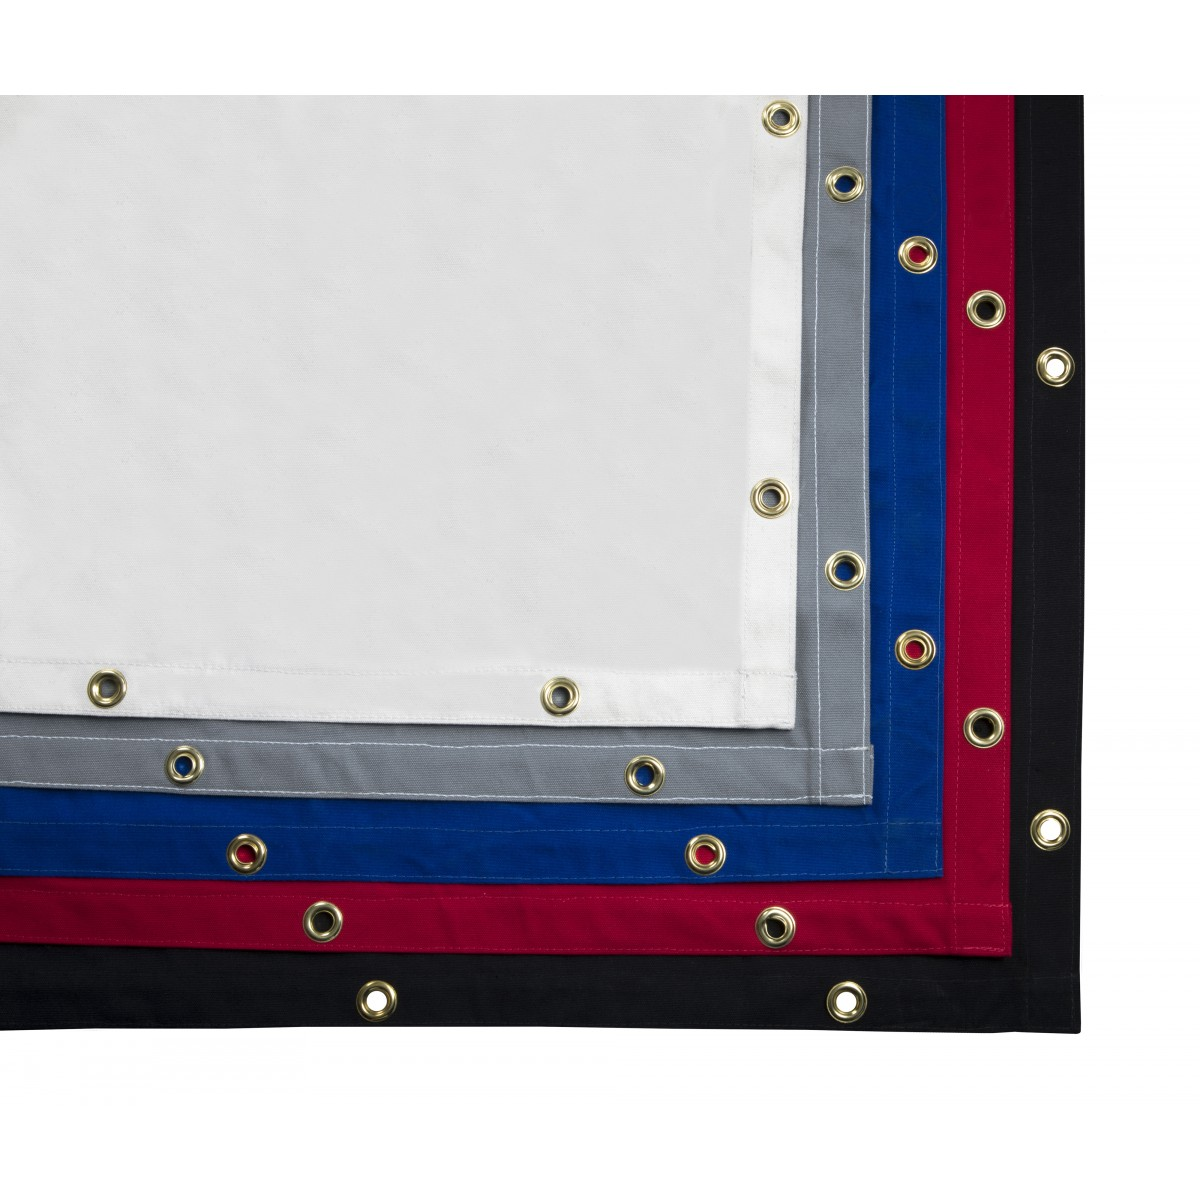 Canvas Mat Covers